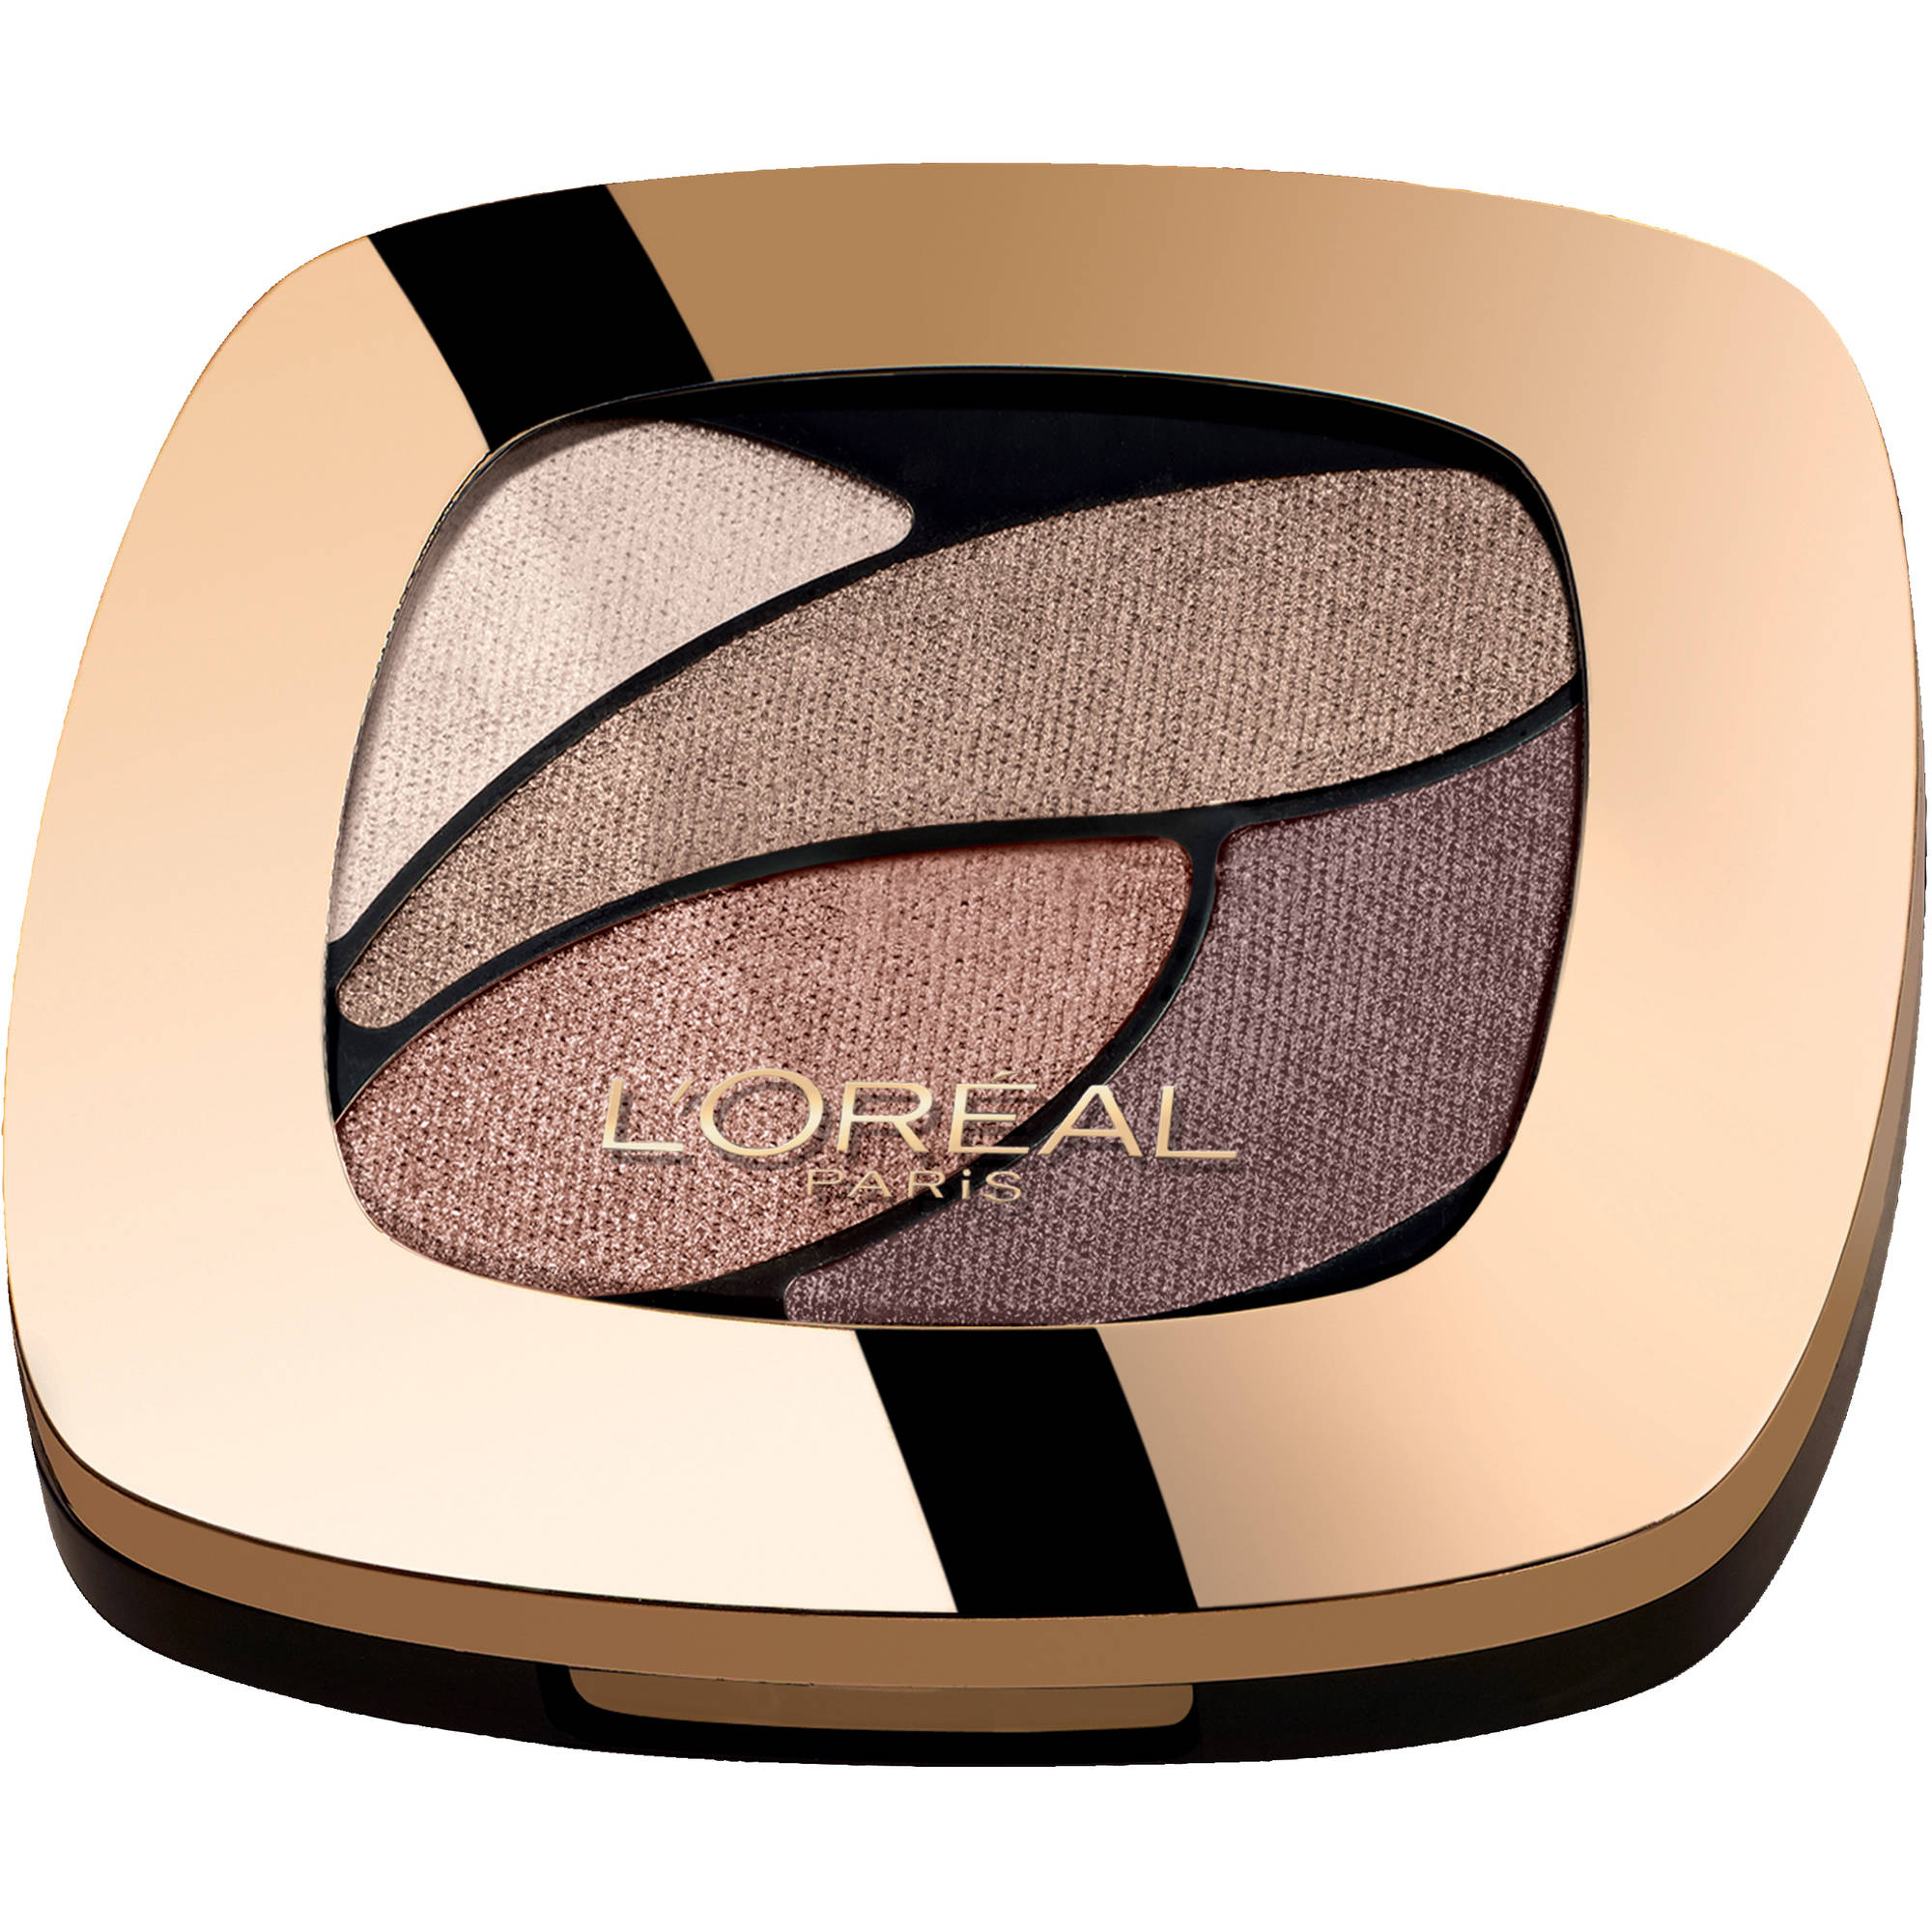 Loreal Paris Colour Riche Dual Effects Eye Shadow Perpetual Nude